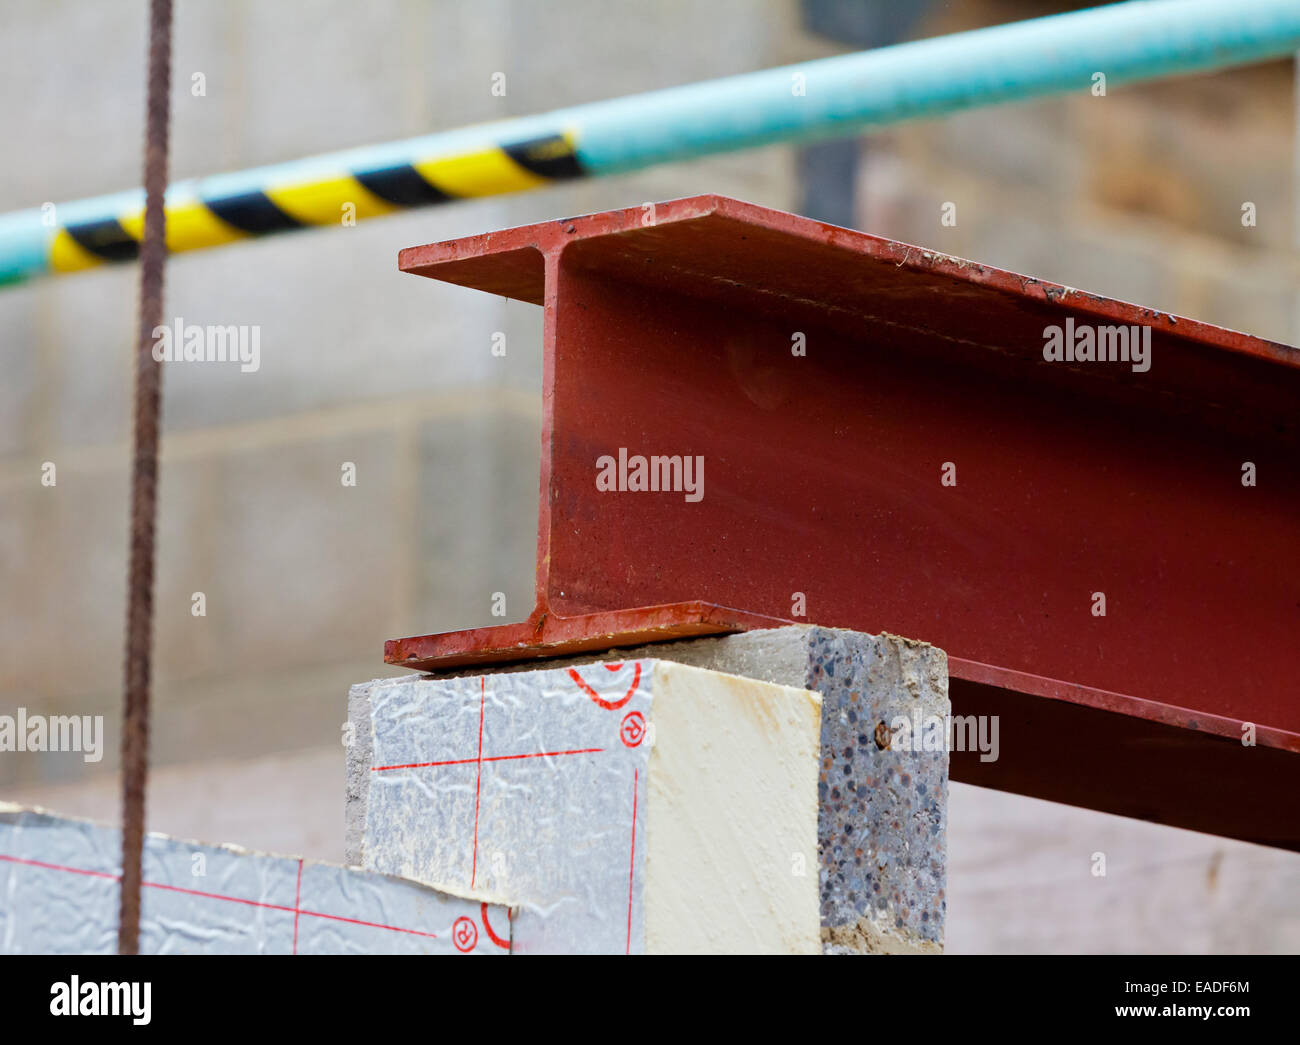 Metal girder laid on top of breeze blocks on a building site - Stock Image